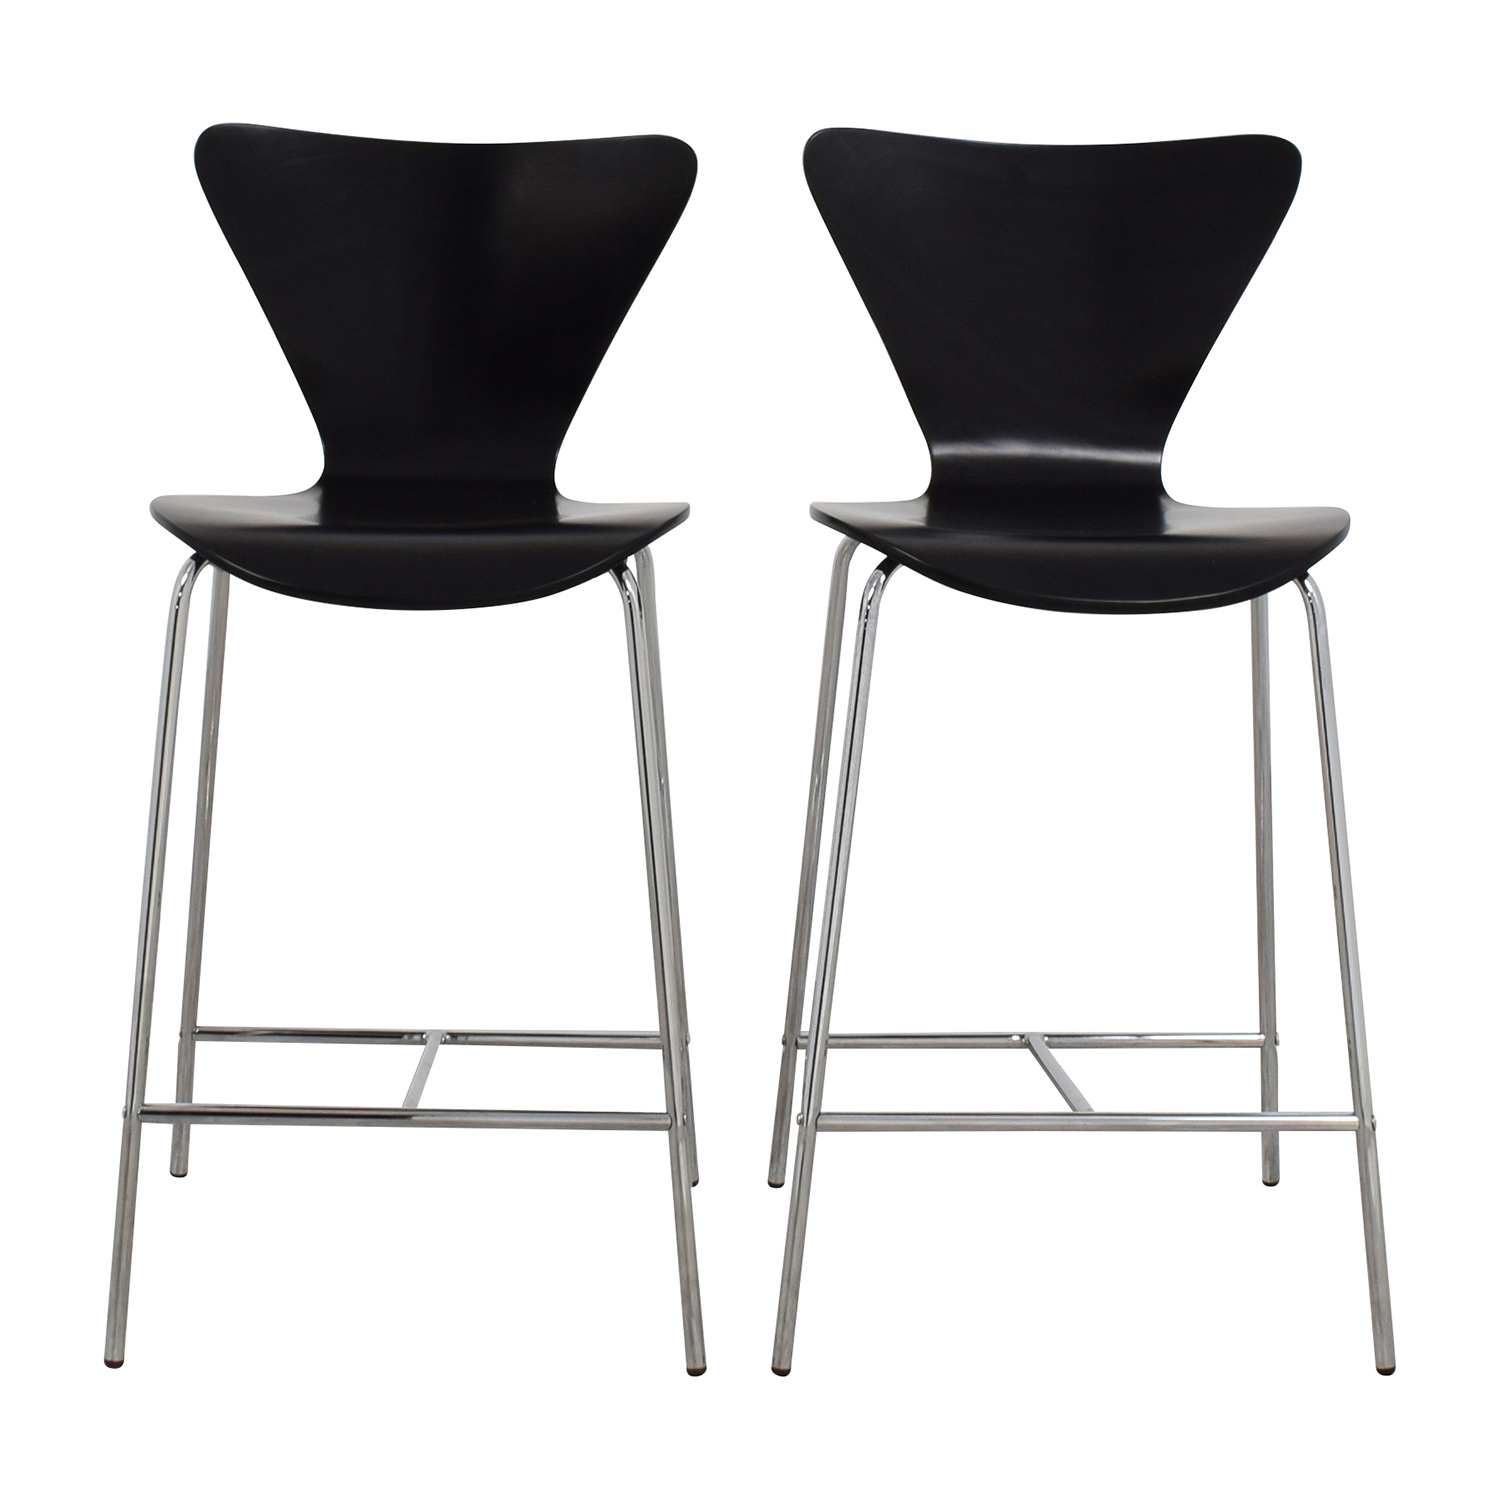 InMod Tendy-C Counter Chair Black / Chairs